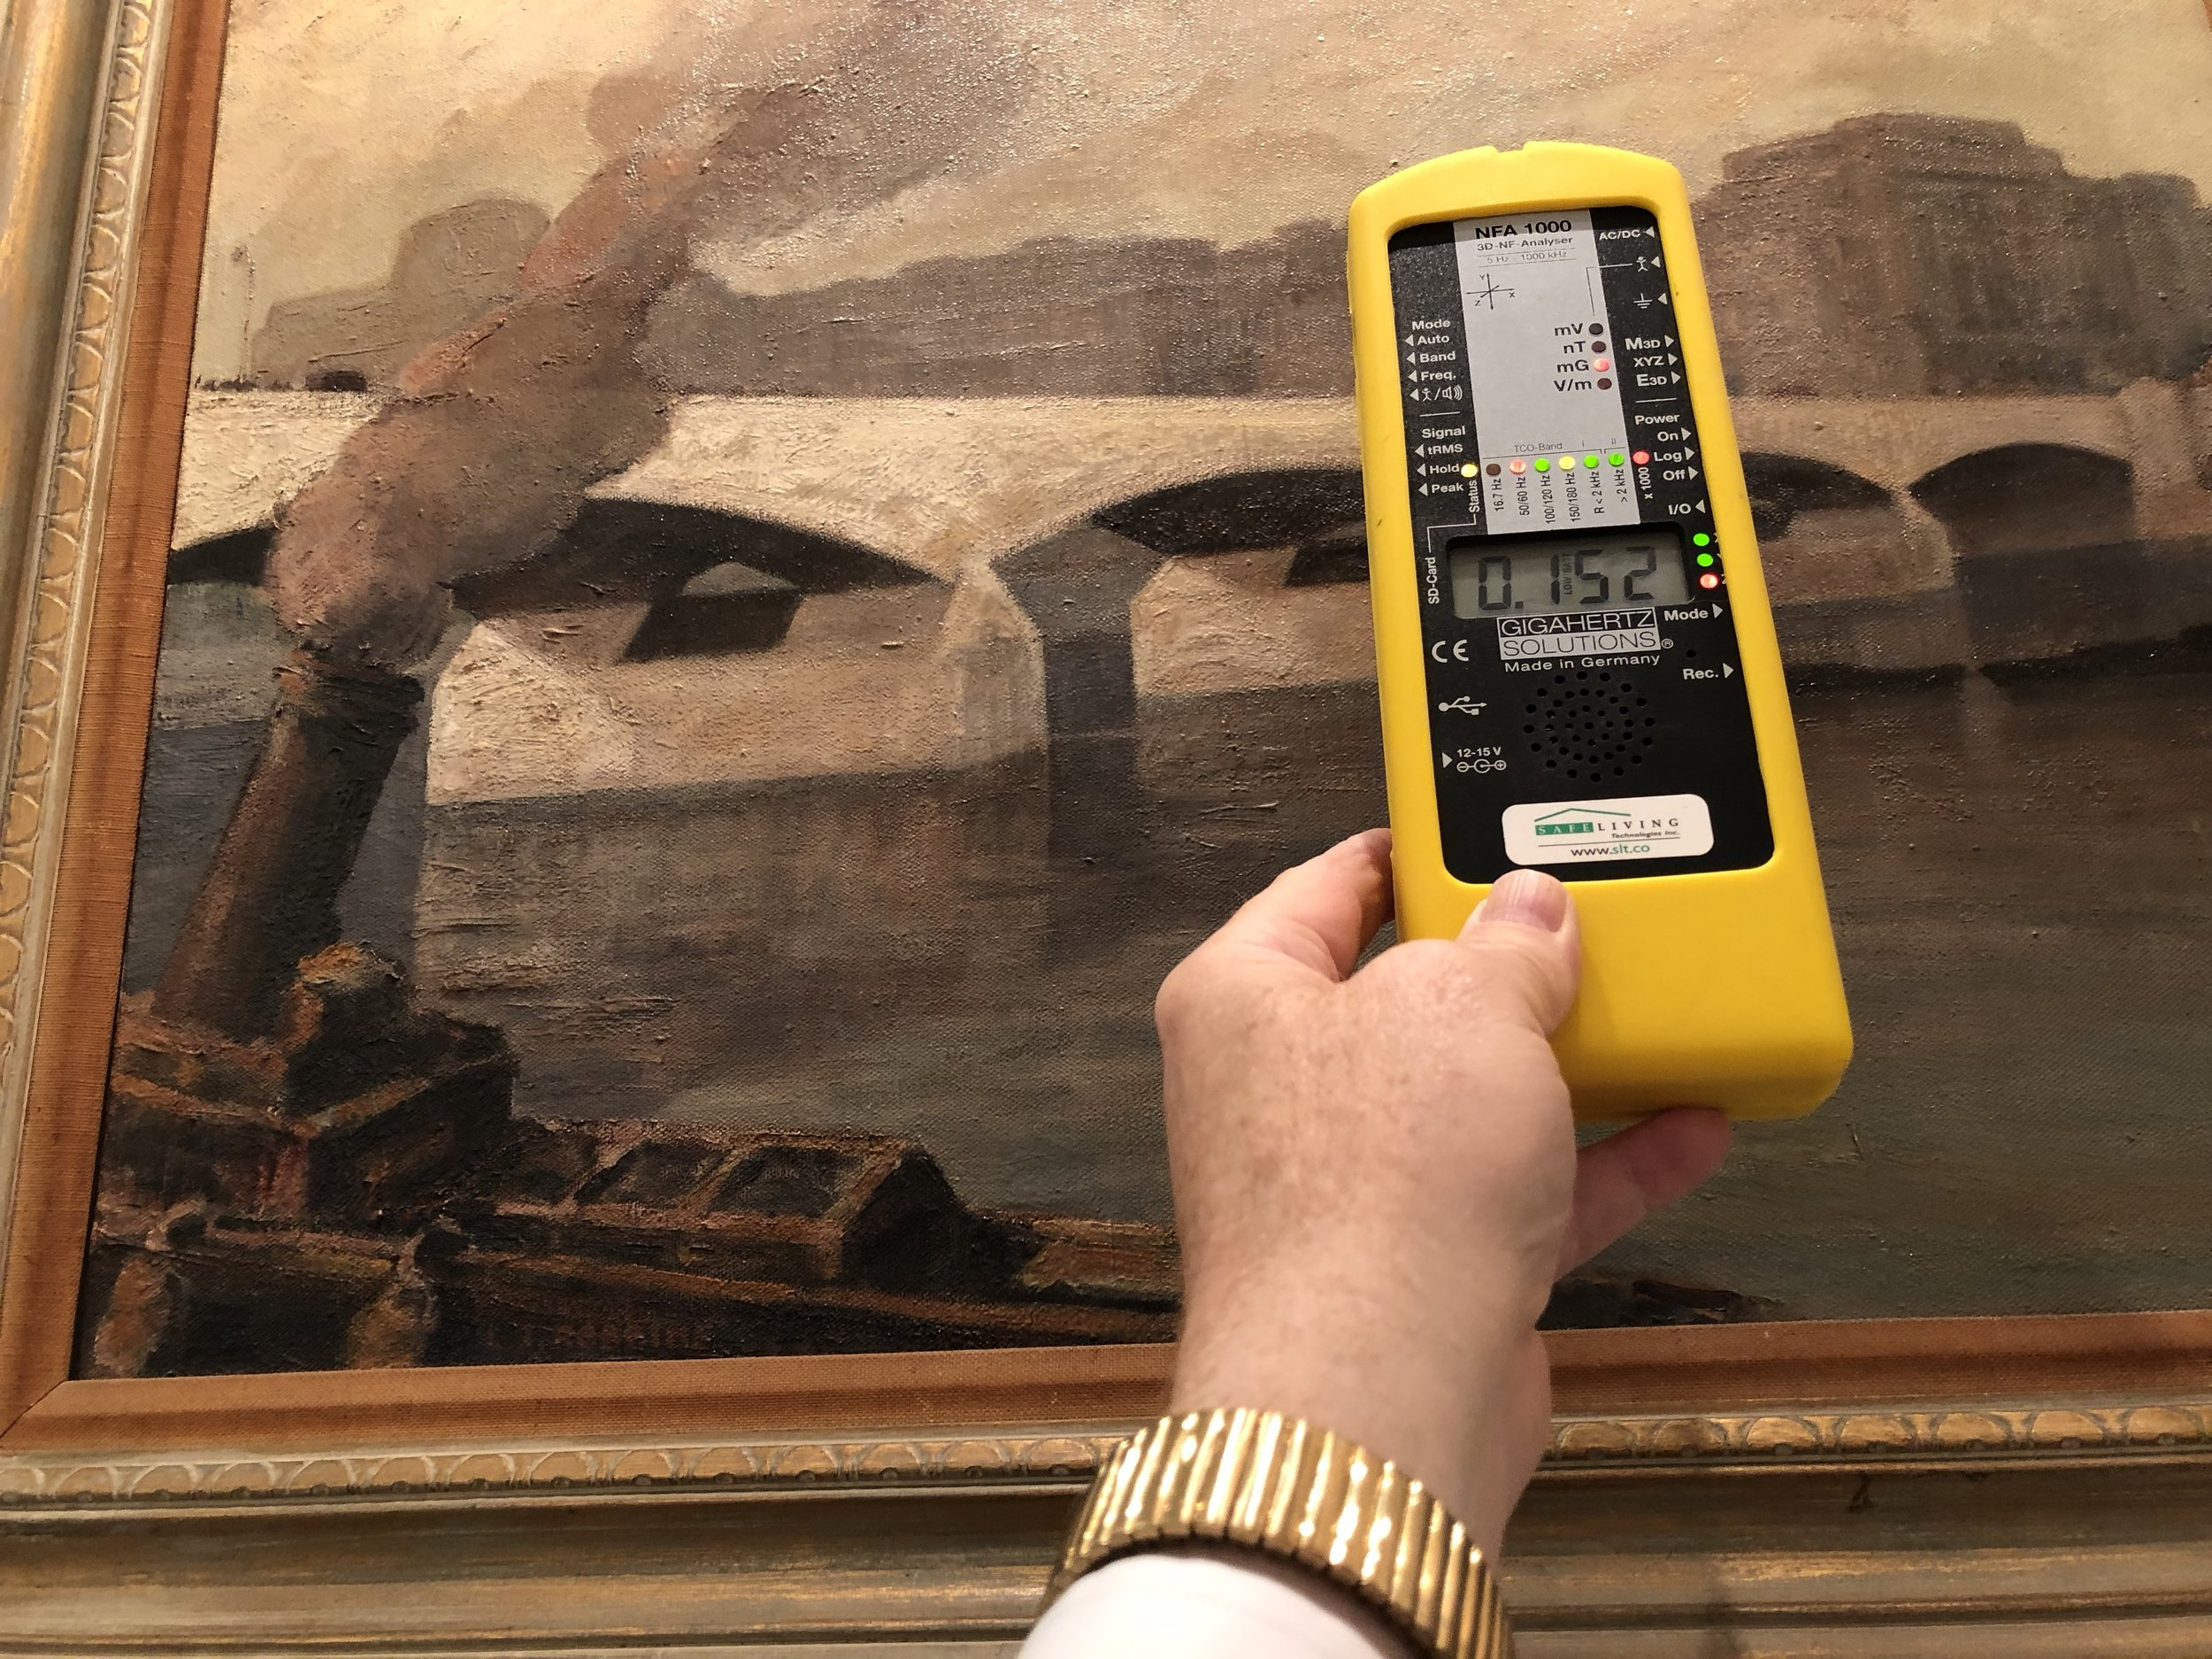 Using a professional gaussmeter, we detected a wiring error behind this painting. We are measuring an ELF (Extremely Low Frequency) 60 Hertz AC Magnetic Field's Flux Density at 152 mG (milligauss) TRMS. We met with the building's electrician, directed him to the problem circuits, and instructed him on how to fix the issue. The problem was solved.